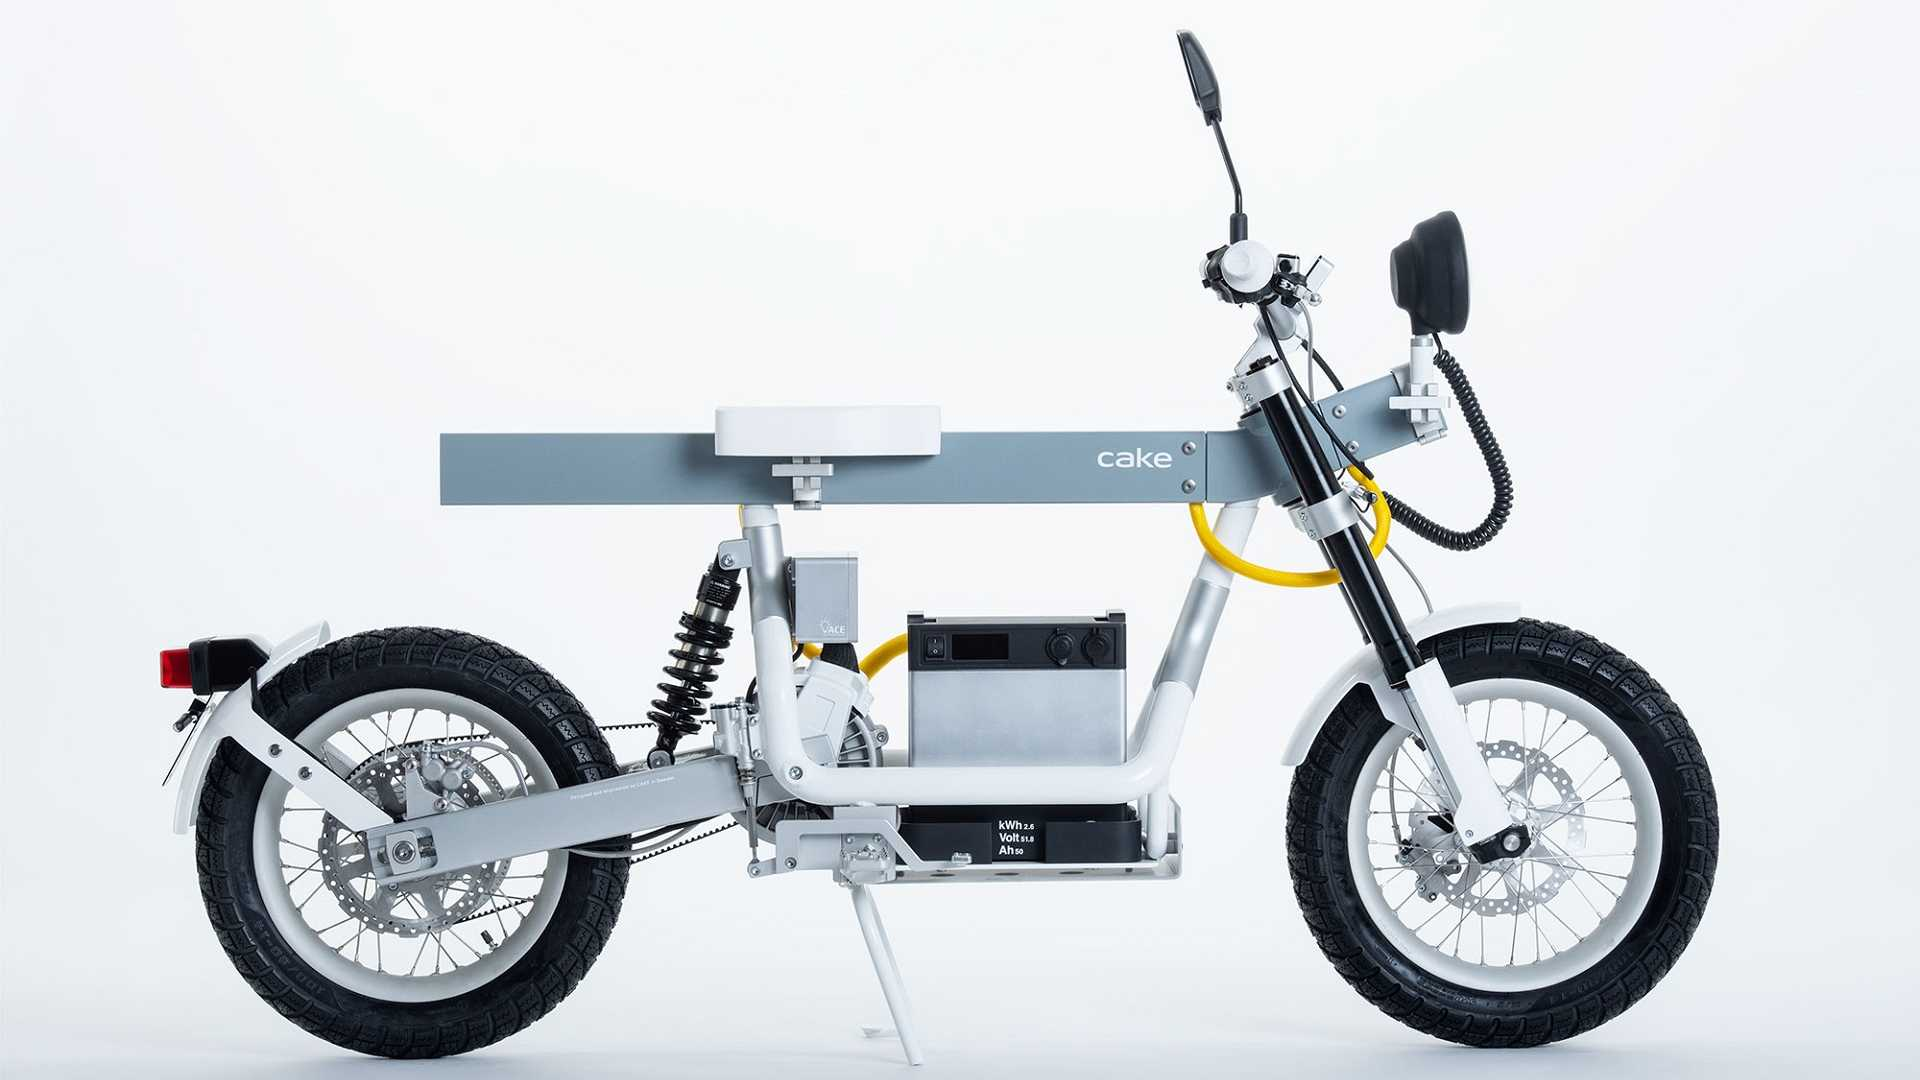 New Cake Ösa Motorcycle Is All About Function, Not Form